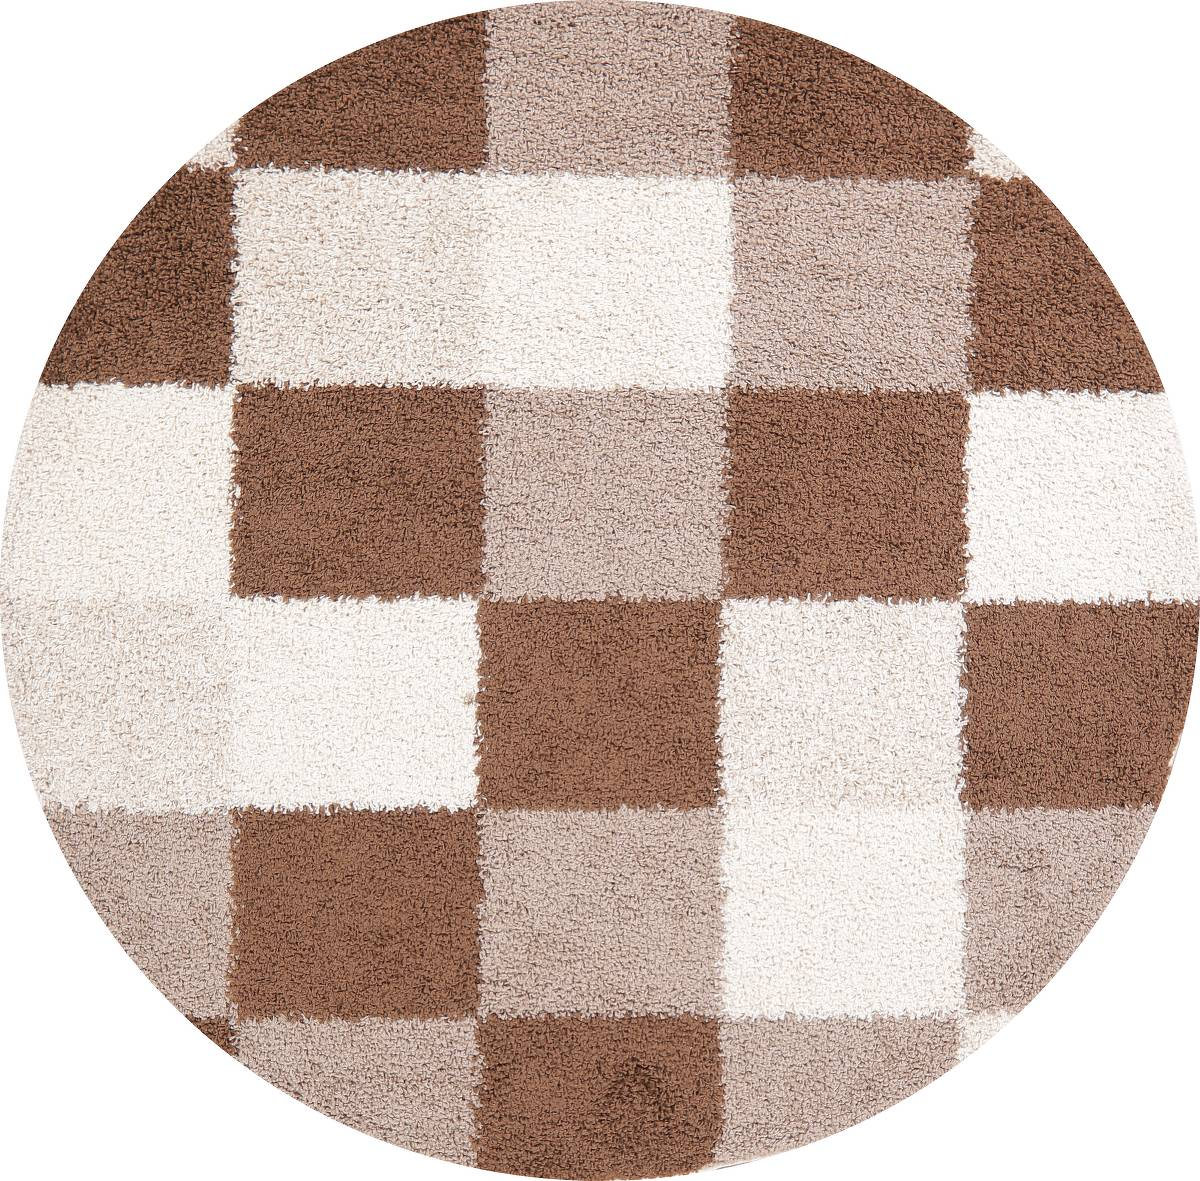 Checked Shaggy Turkish Oriental Rugs image 16